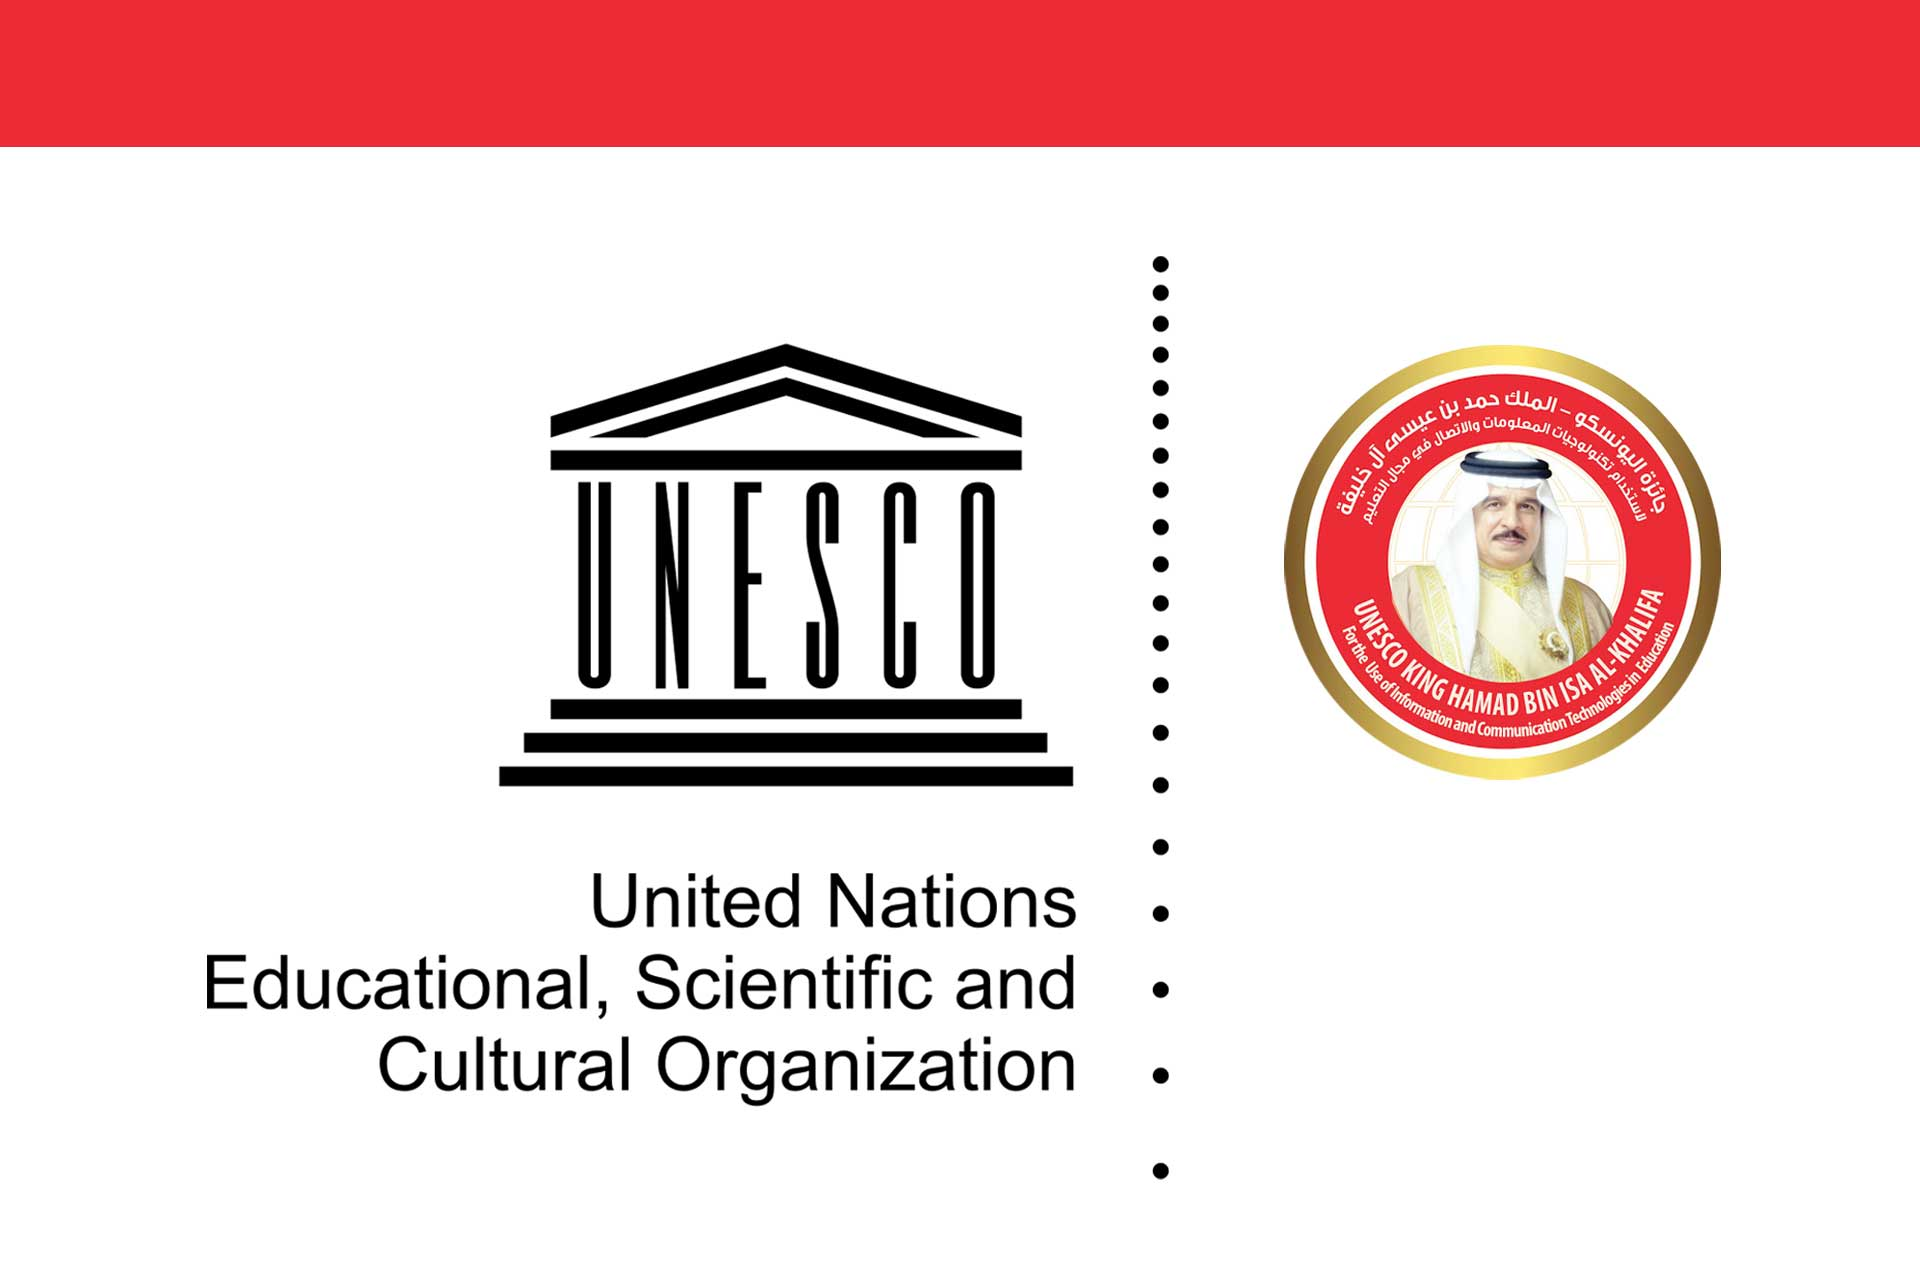 X5gon a finalist of the 2019 UNESCO King Hamad Bin Isa Al-Khalifa Prize for the Use of ICT in Education.